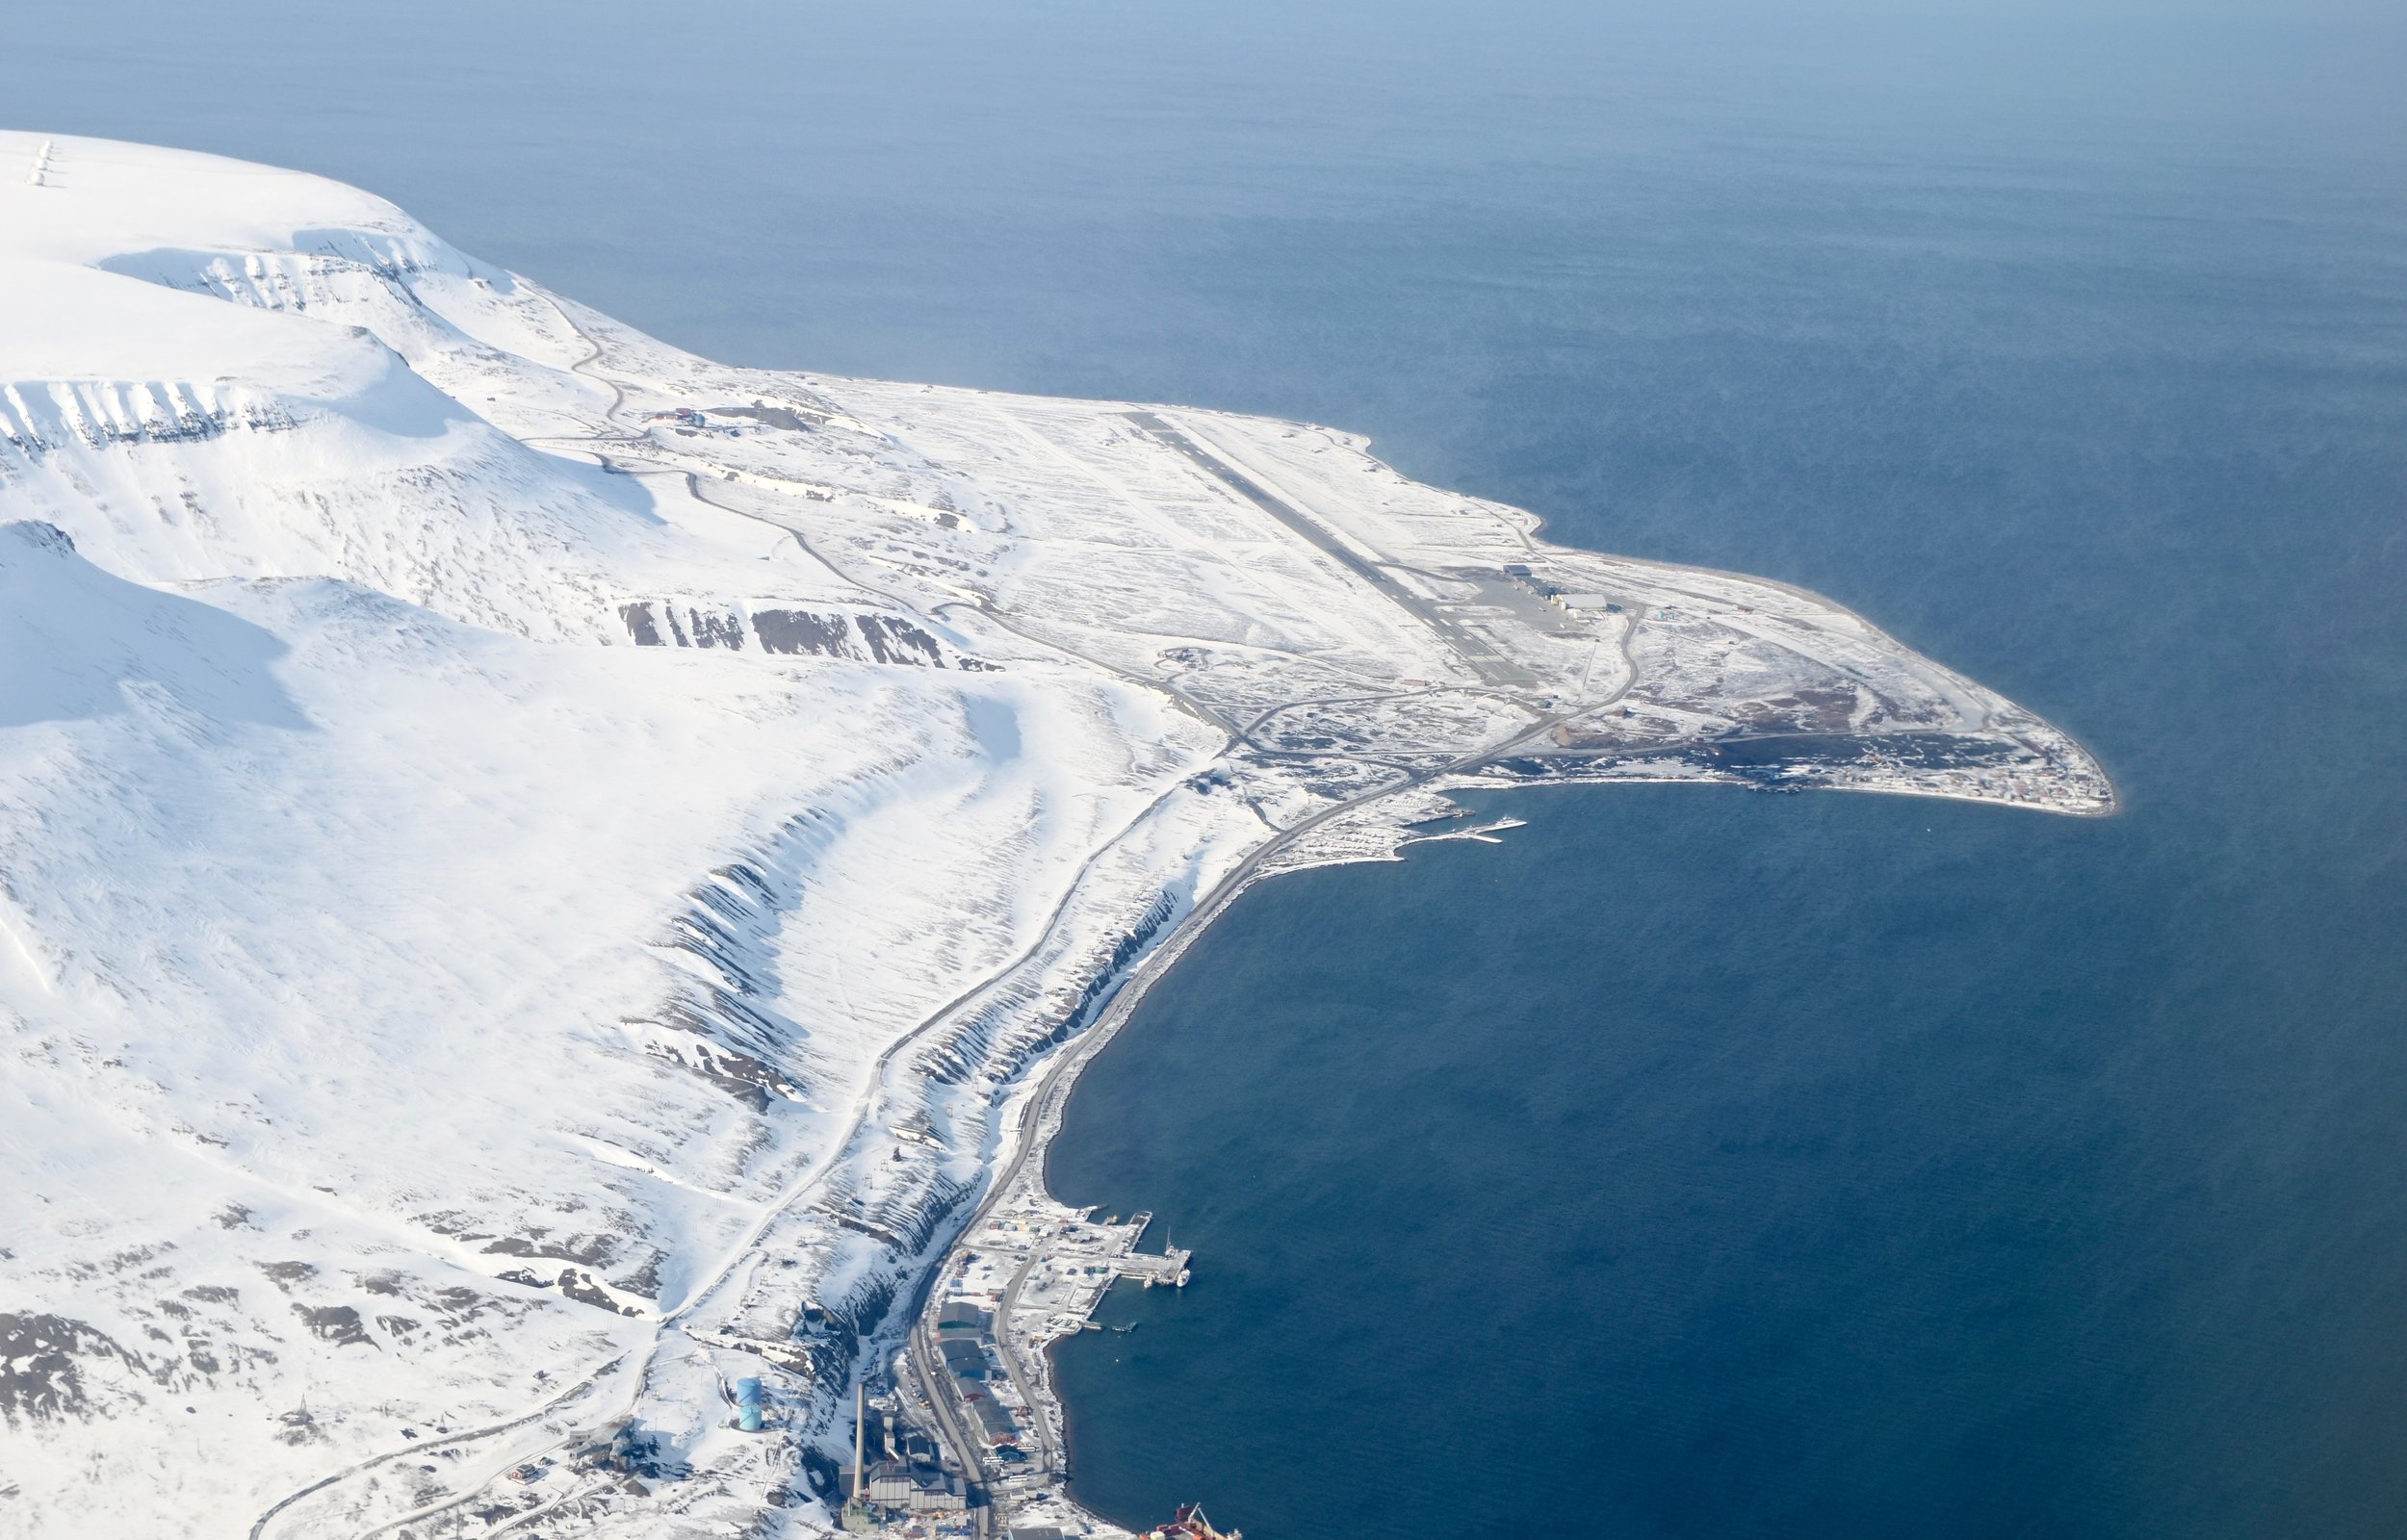 Svalbard Airport, Longyear - This is the northernmost airport in the world with scheduled public flights.